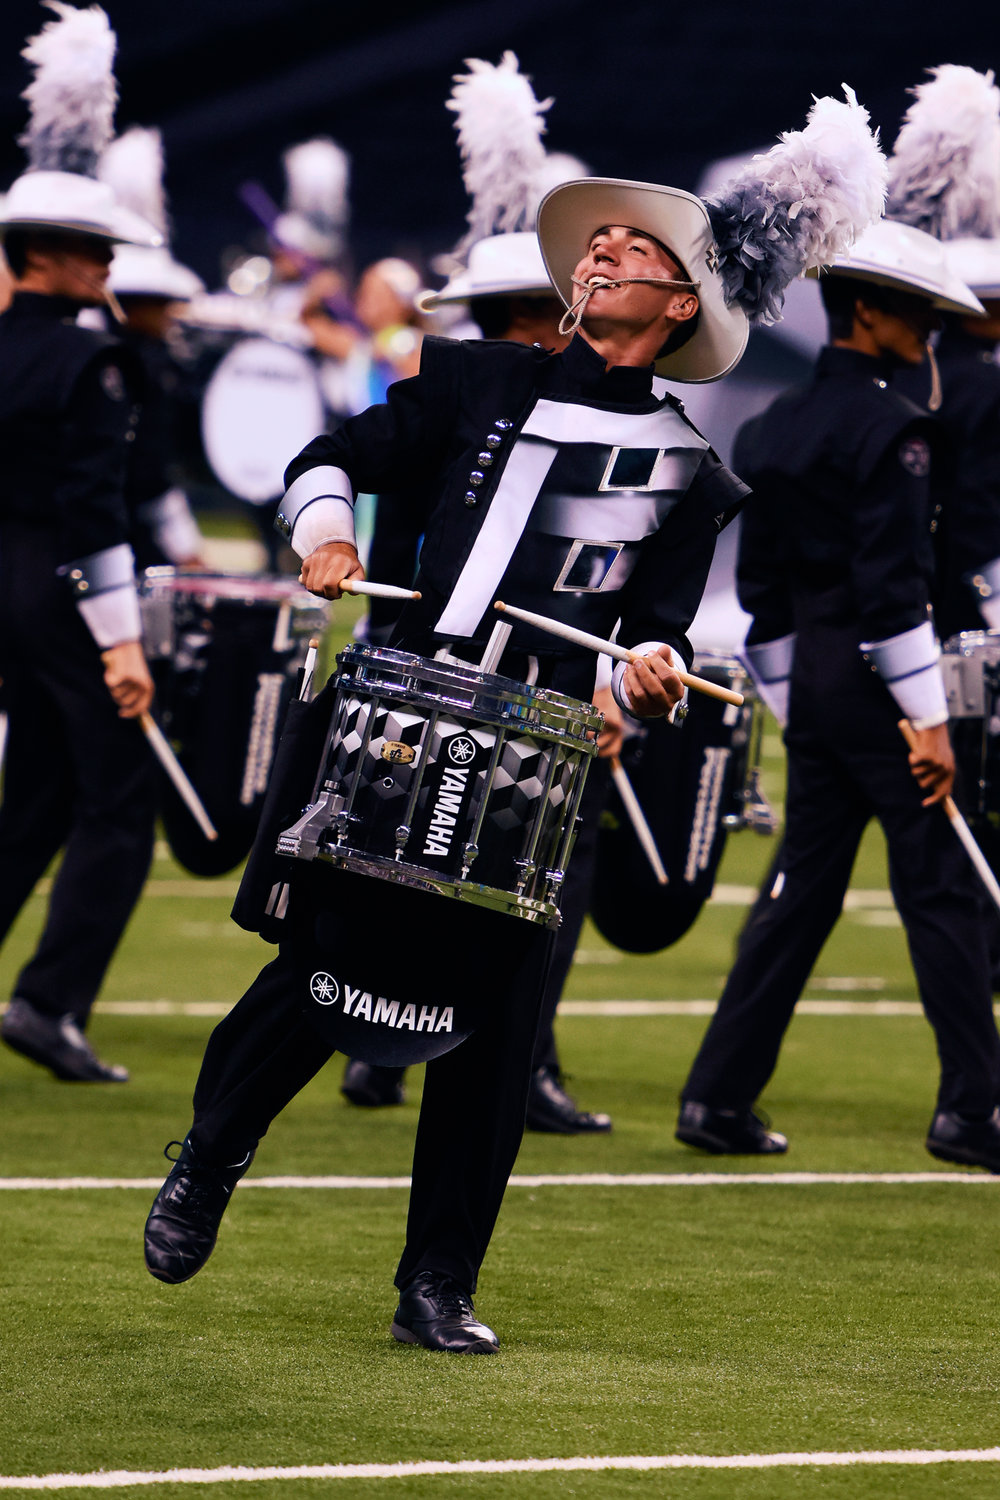 Crossmen_P1_16_HiRes_RGB.jpg